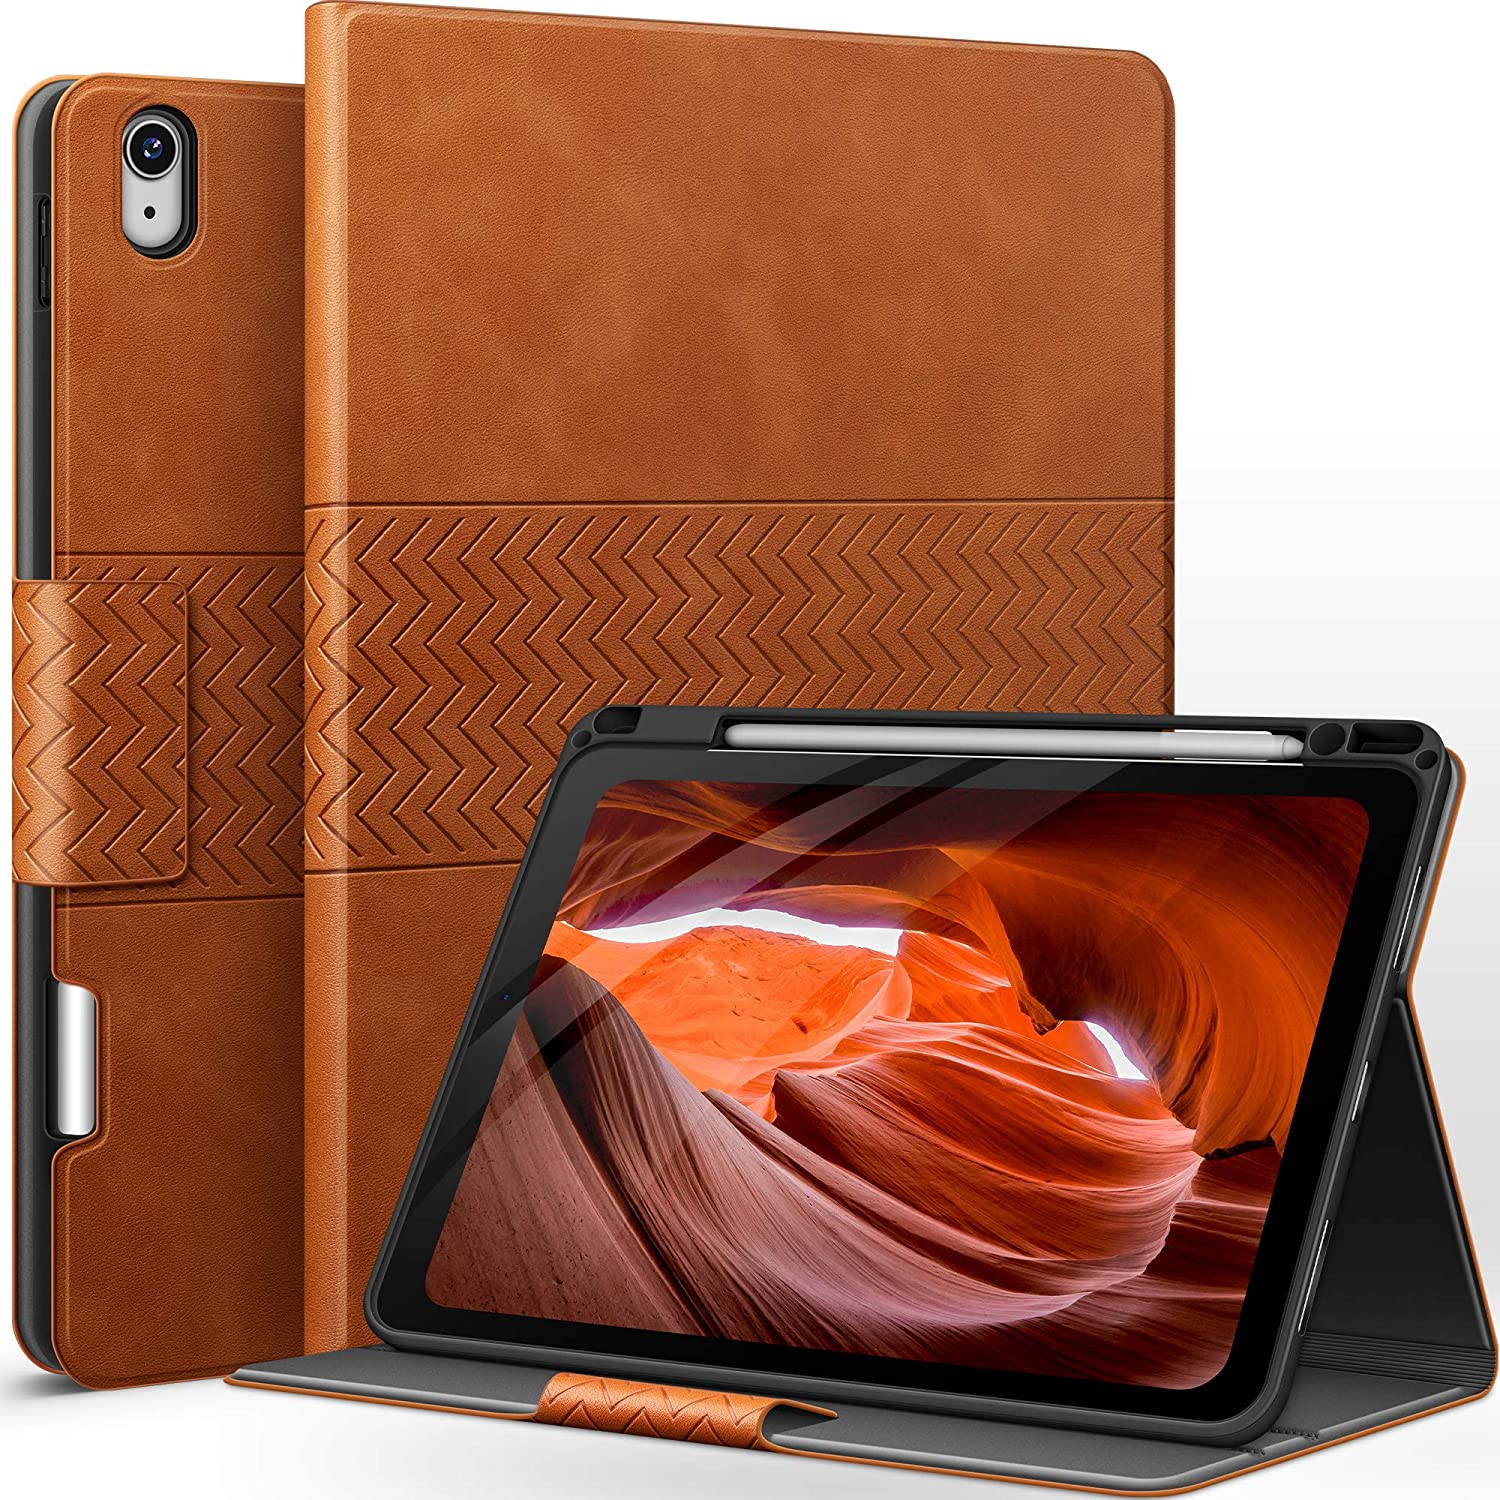 auaua iPad Air 4 10.9 Inch Case 2020 with Built-in Apple Pencil Holder PU Leather Cover for iPad Air 4th Generation 2020 (Brown)